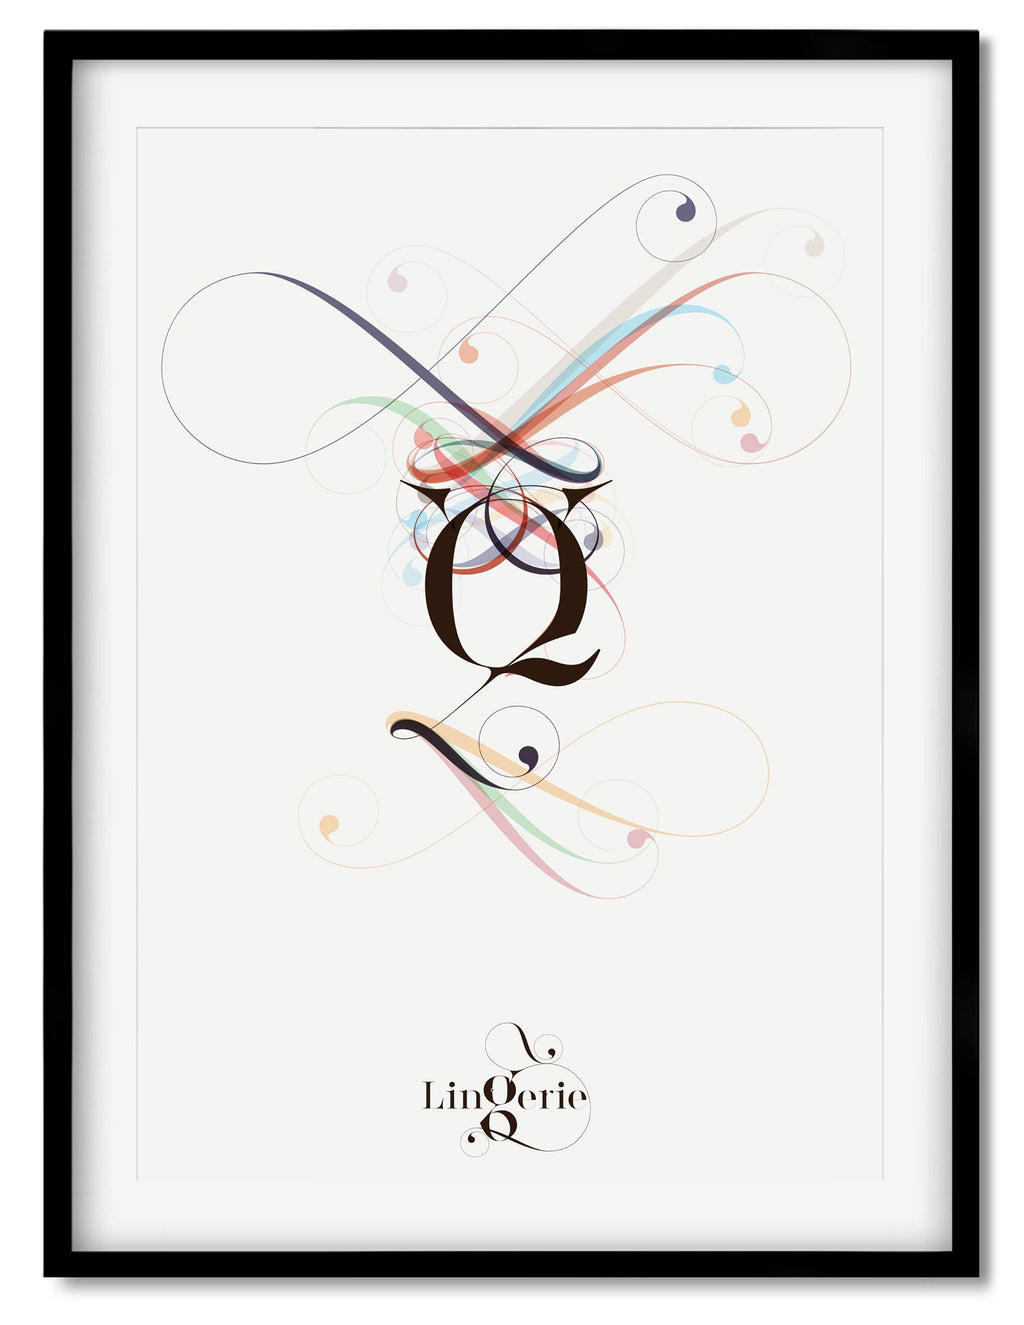 Fancy Q Typographic poster Designed by Moshik Nadav Typography with Lingerie Typeface